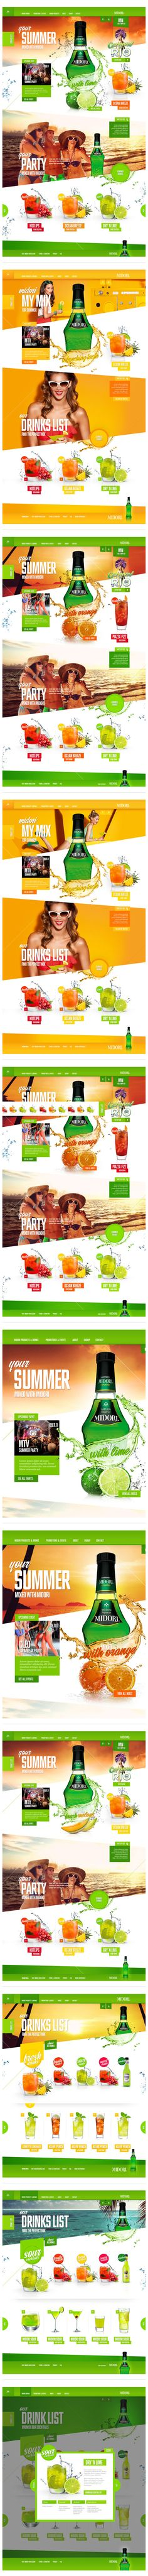 Midori - Website redesign by Garth Sykes, via Behance